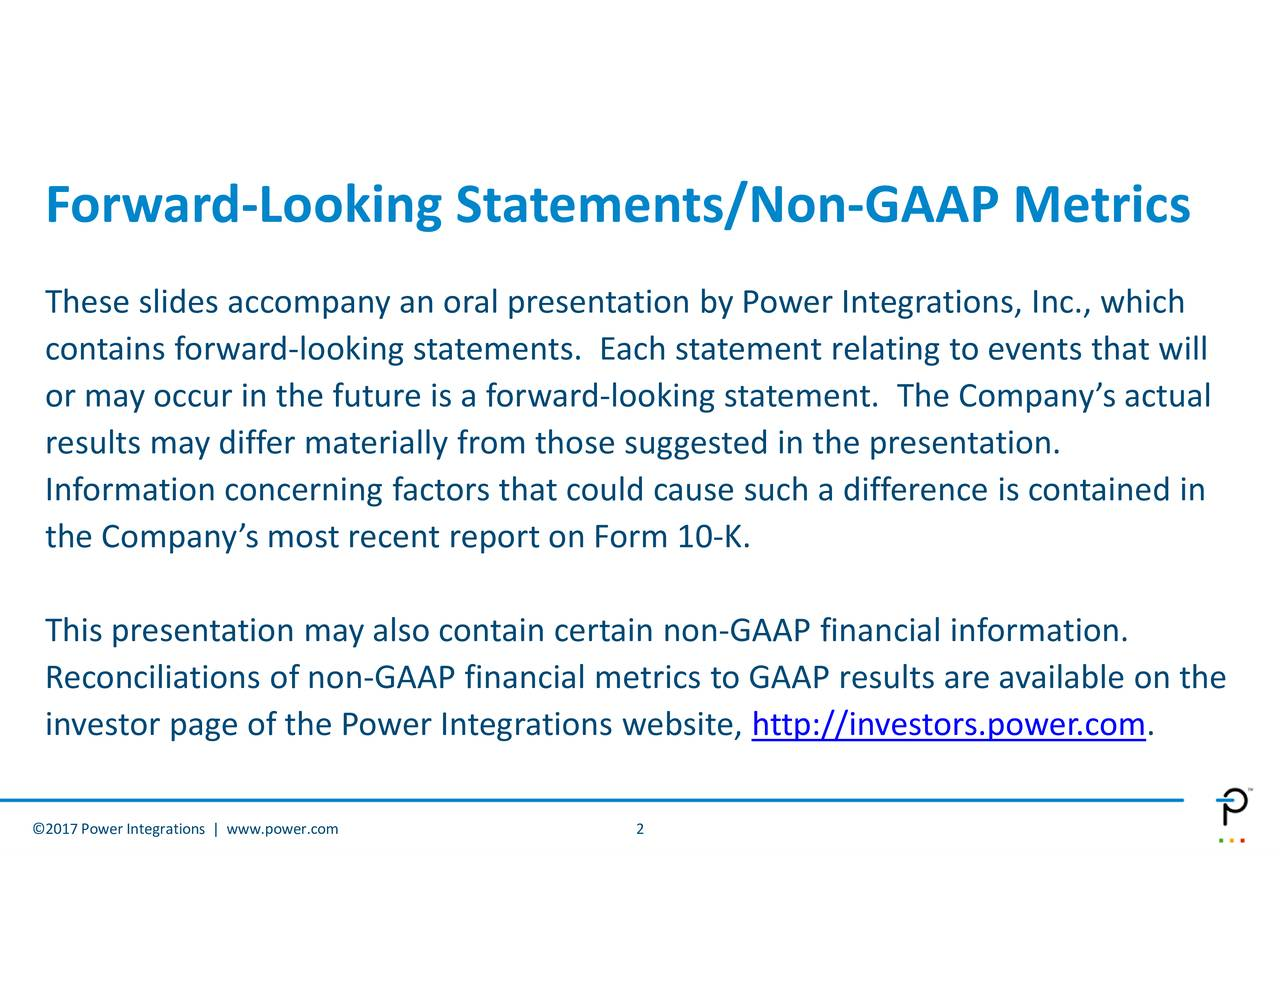 s are available on the cial information. tegrationspresentation. -GAAP Metelant. Thedifference is contained in http://investors.power.com 2 -Looking Statements/Non Forw Thesedslides accompany an oral pre2017Power Integrations | www.power.com